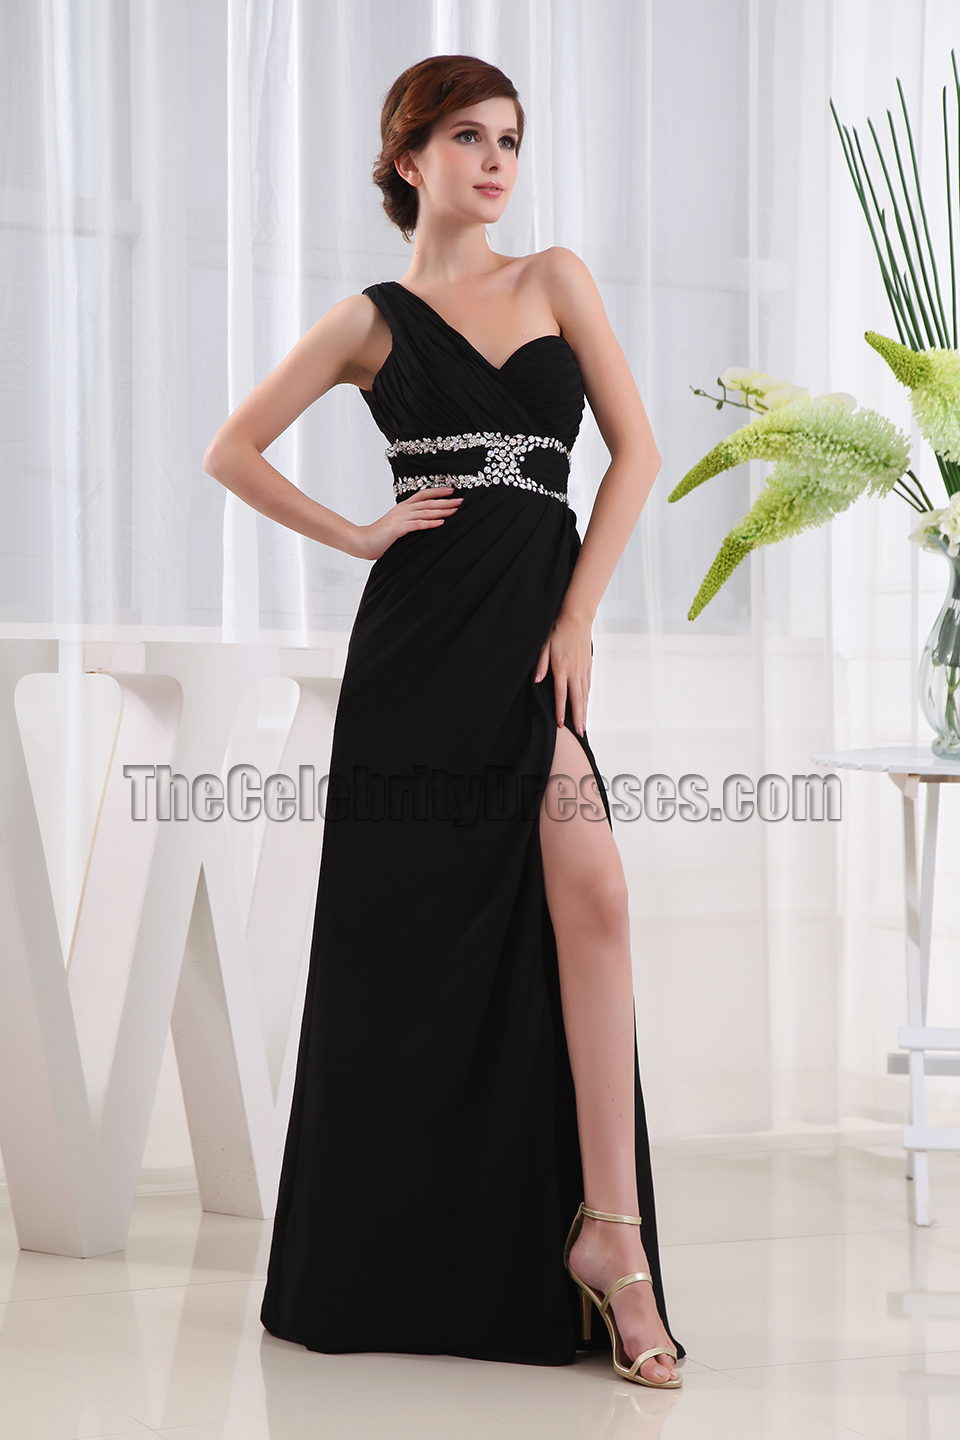 Black Backless One Shoulder Evening Gowns Pageant Prom Dresses ...